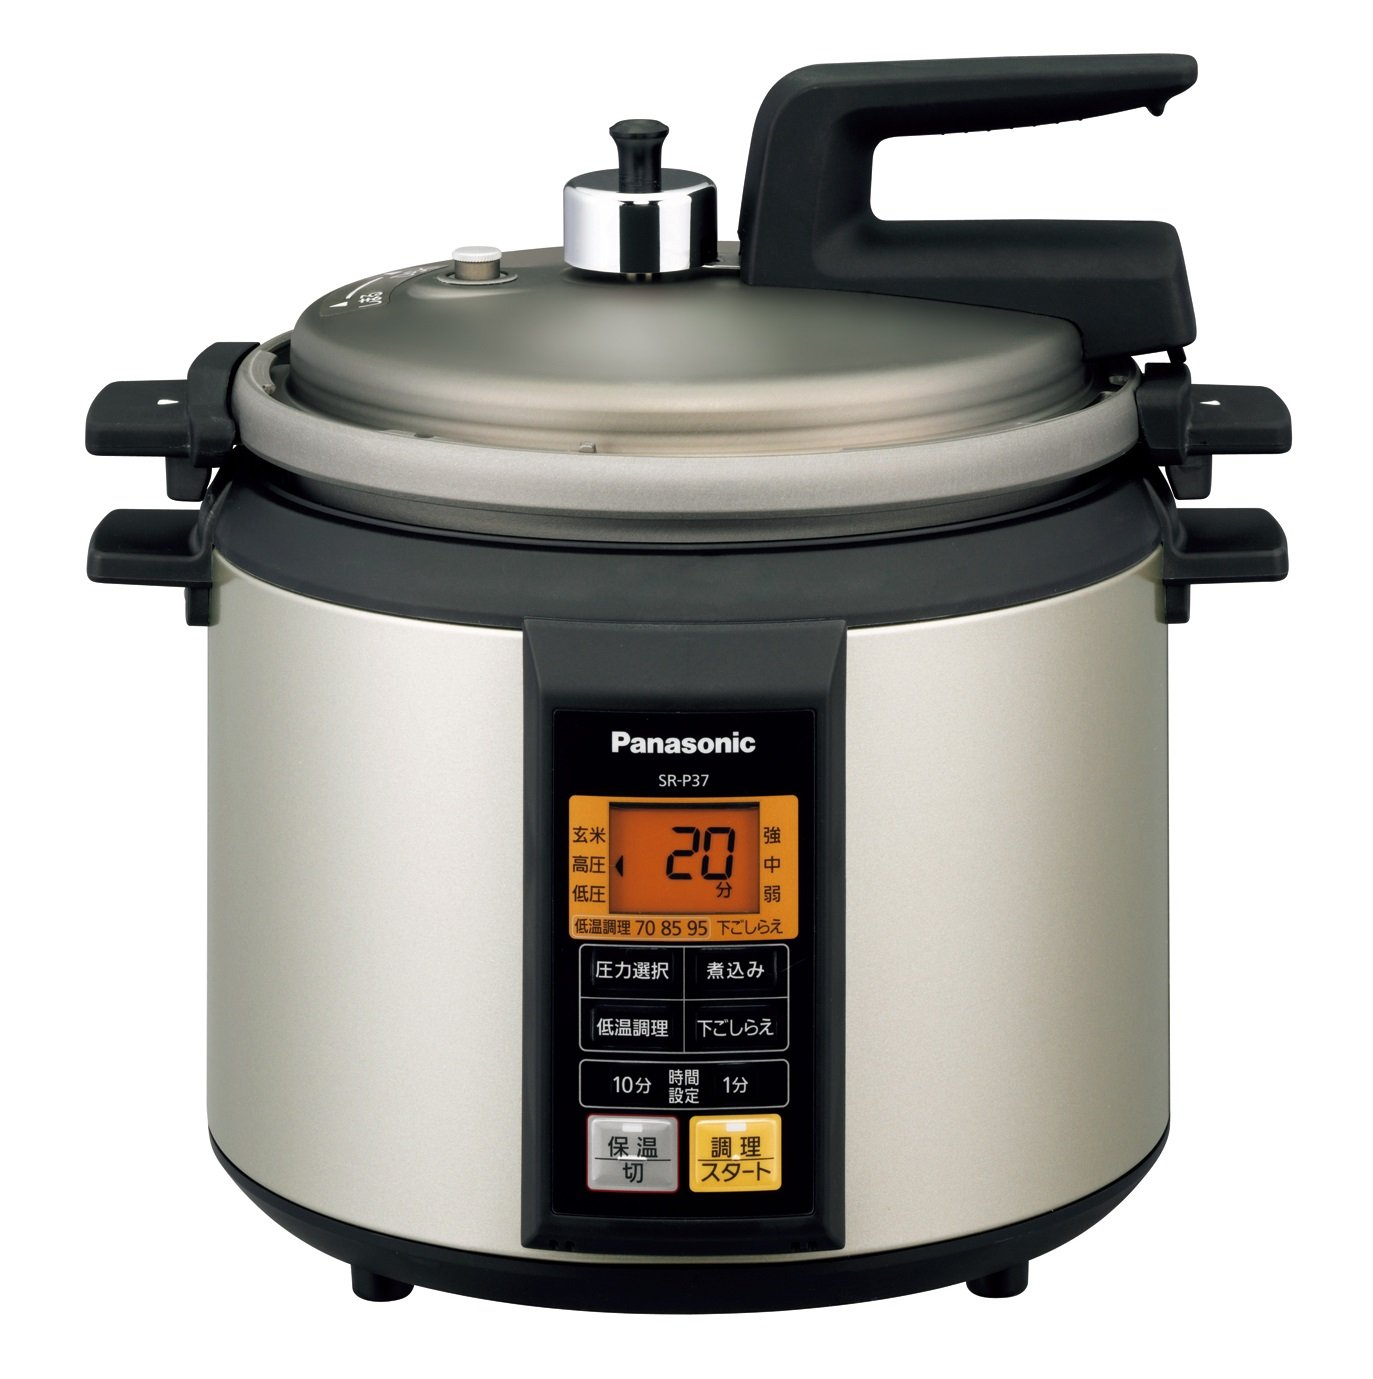 Amazoncom Panasonic microcomputer electric pressure cooker Noble